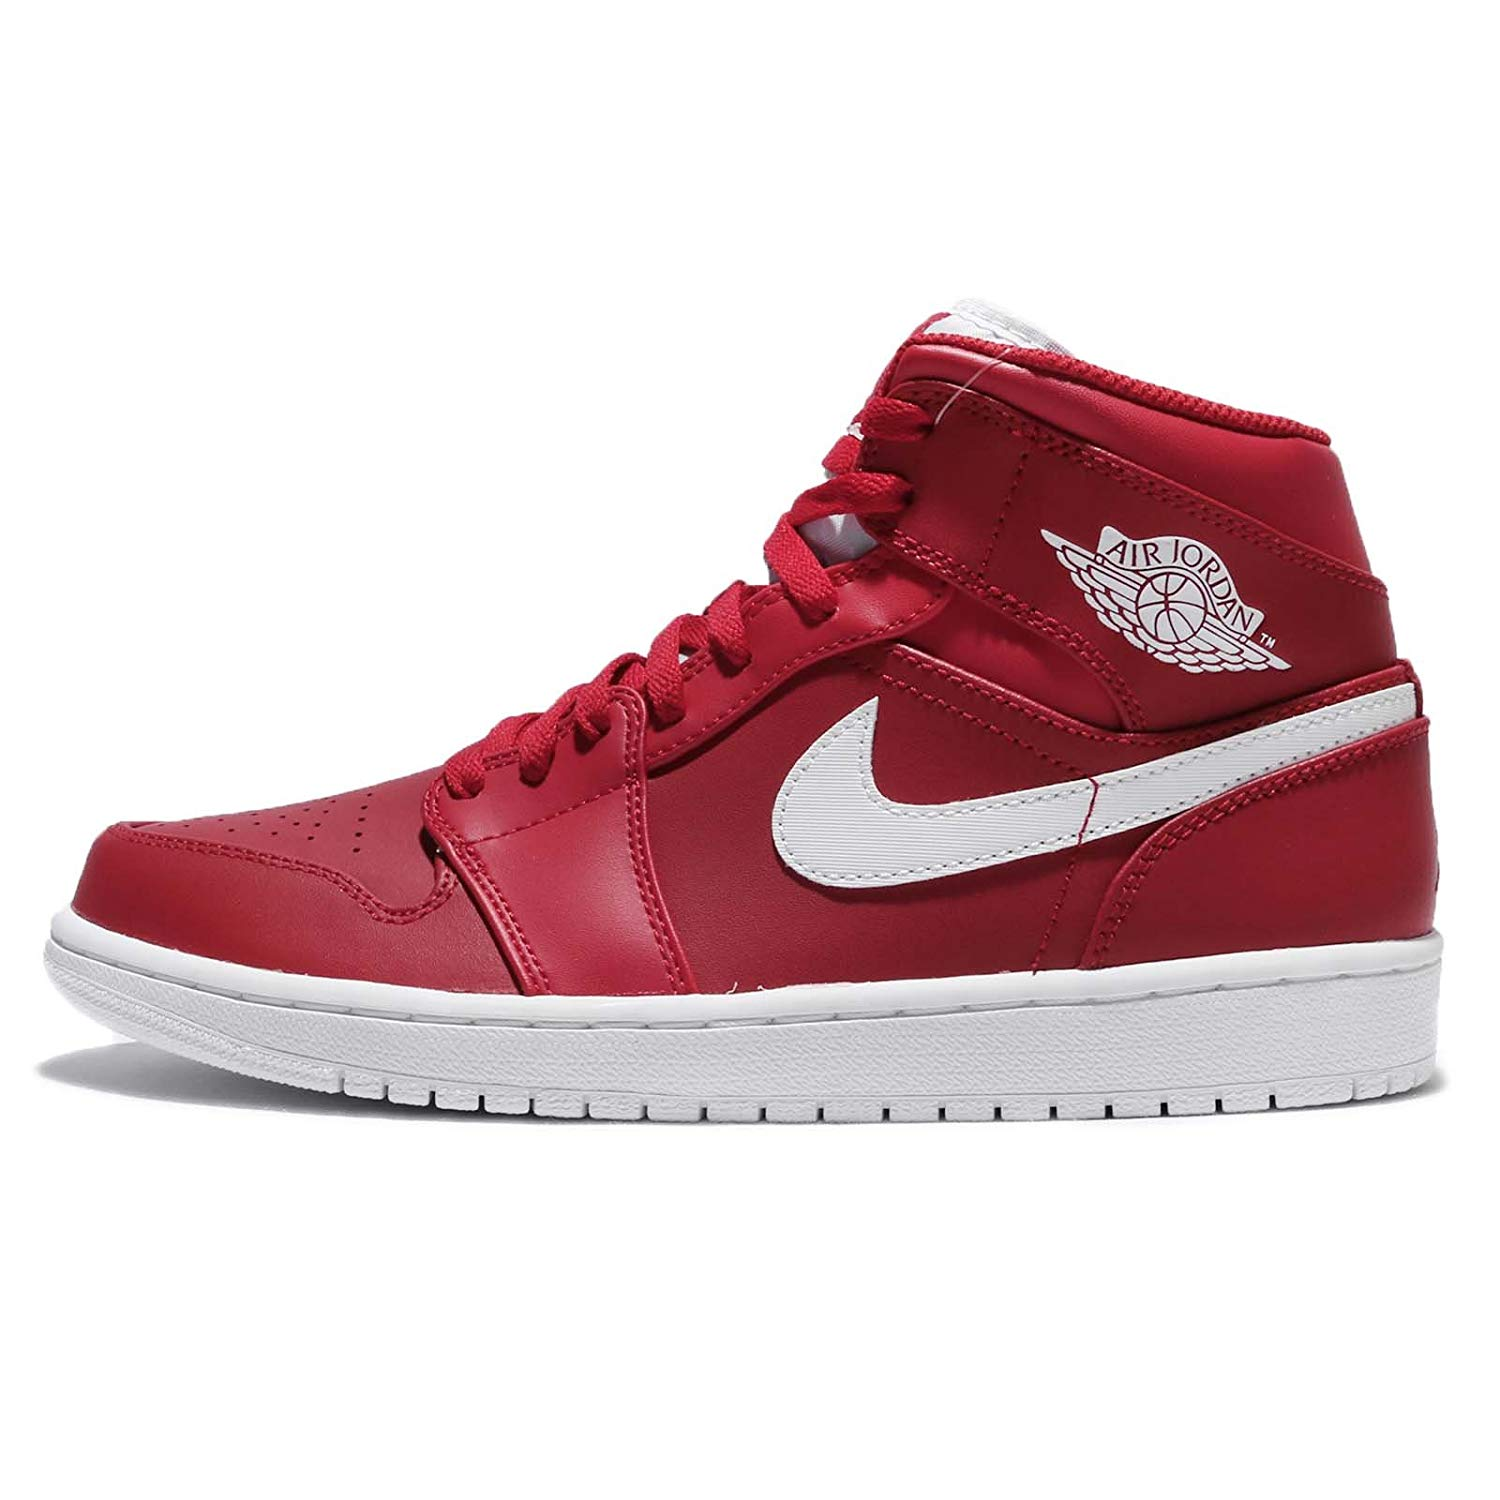 newest collection c60fa ad72a Get Quotations · Jordan Nike Men s Air 1 Mid Basketball Shoe